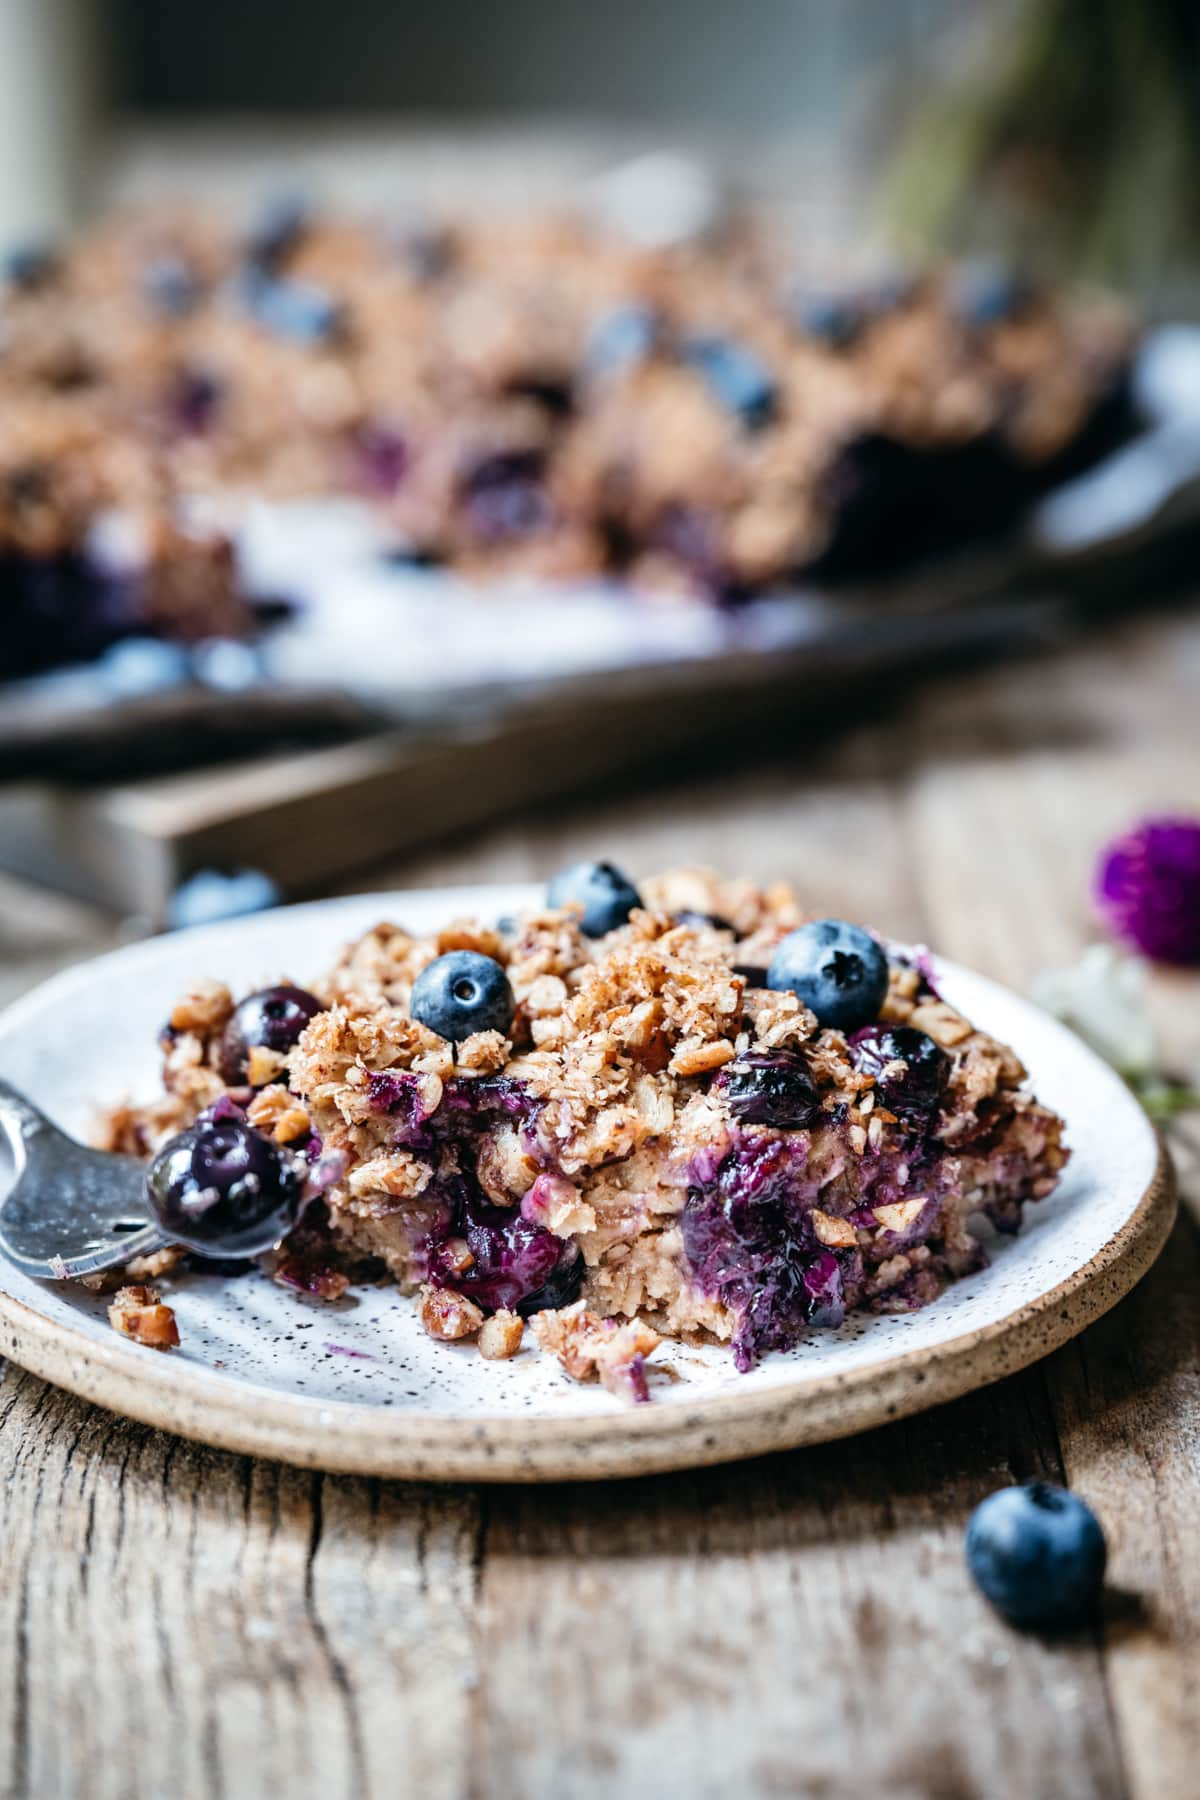 side view of slice of blueberry baked oatmeal on small plate